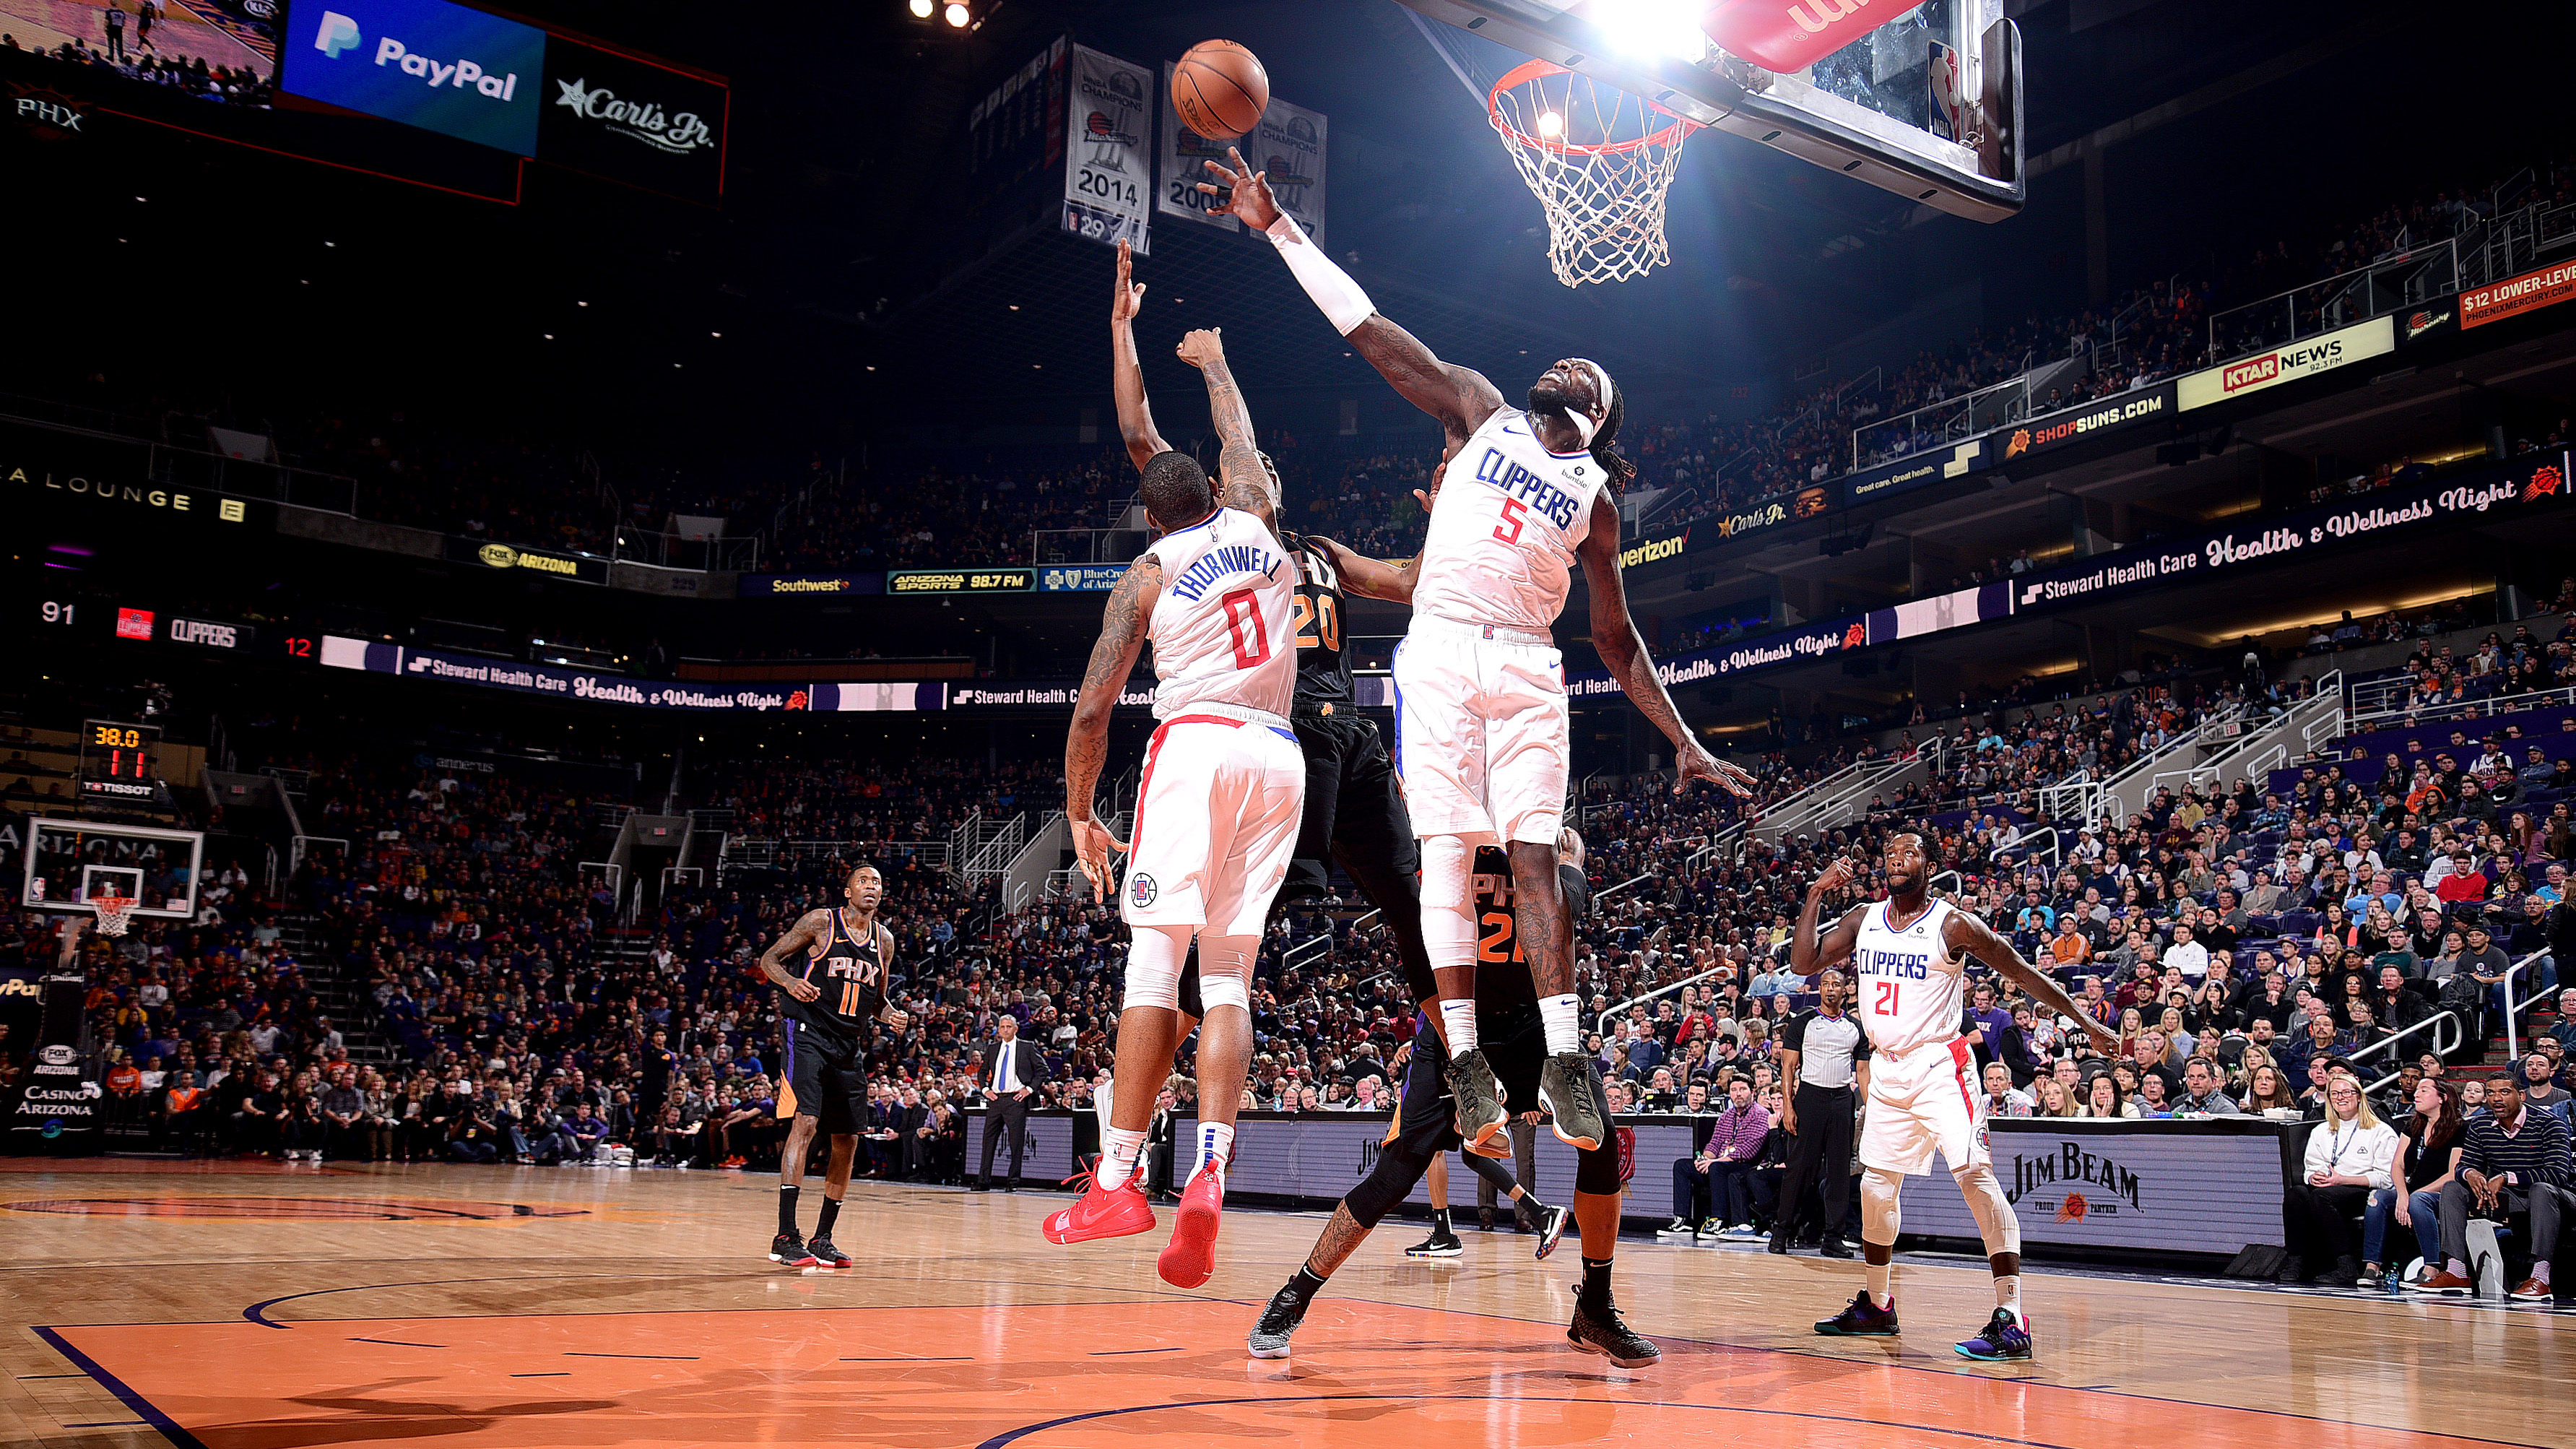 GAME RECAP: Clippers 121, Suns 111